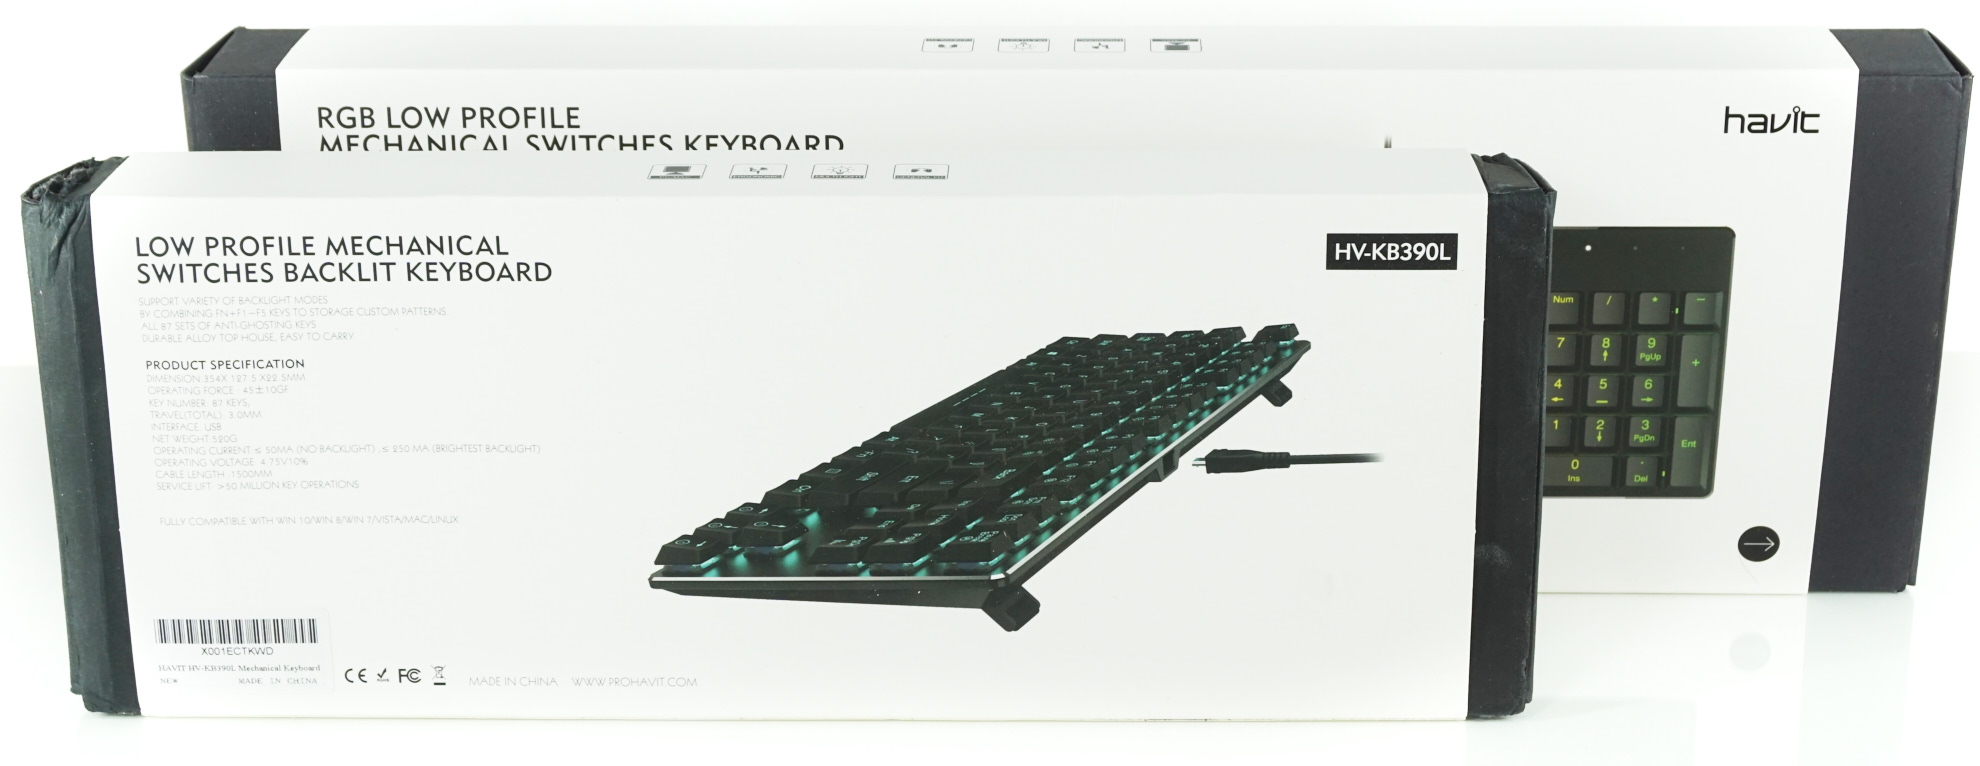 7d4970c36e8 Among other things, HAVIT designs and produces mechanical keyboards. When  the company approached us to offer us samples, the design of one particular  ...